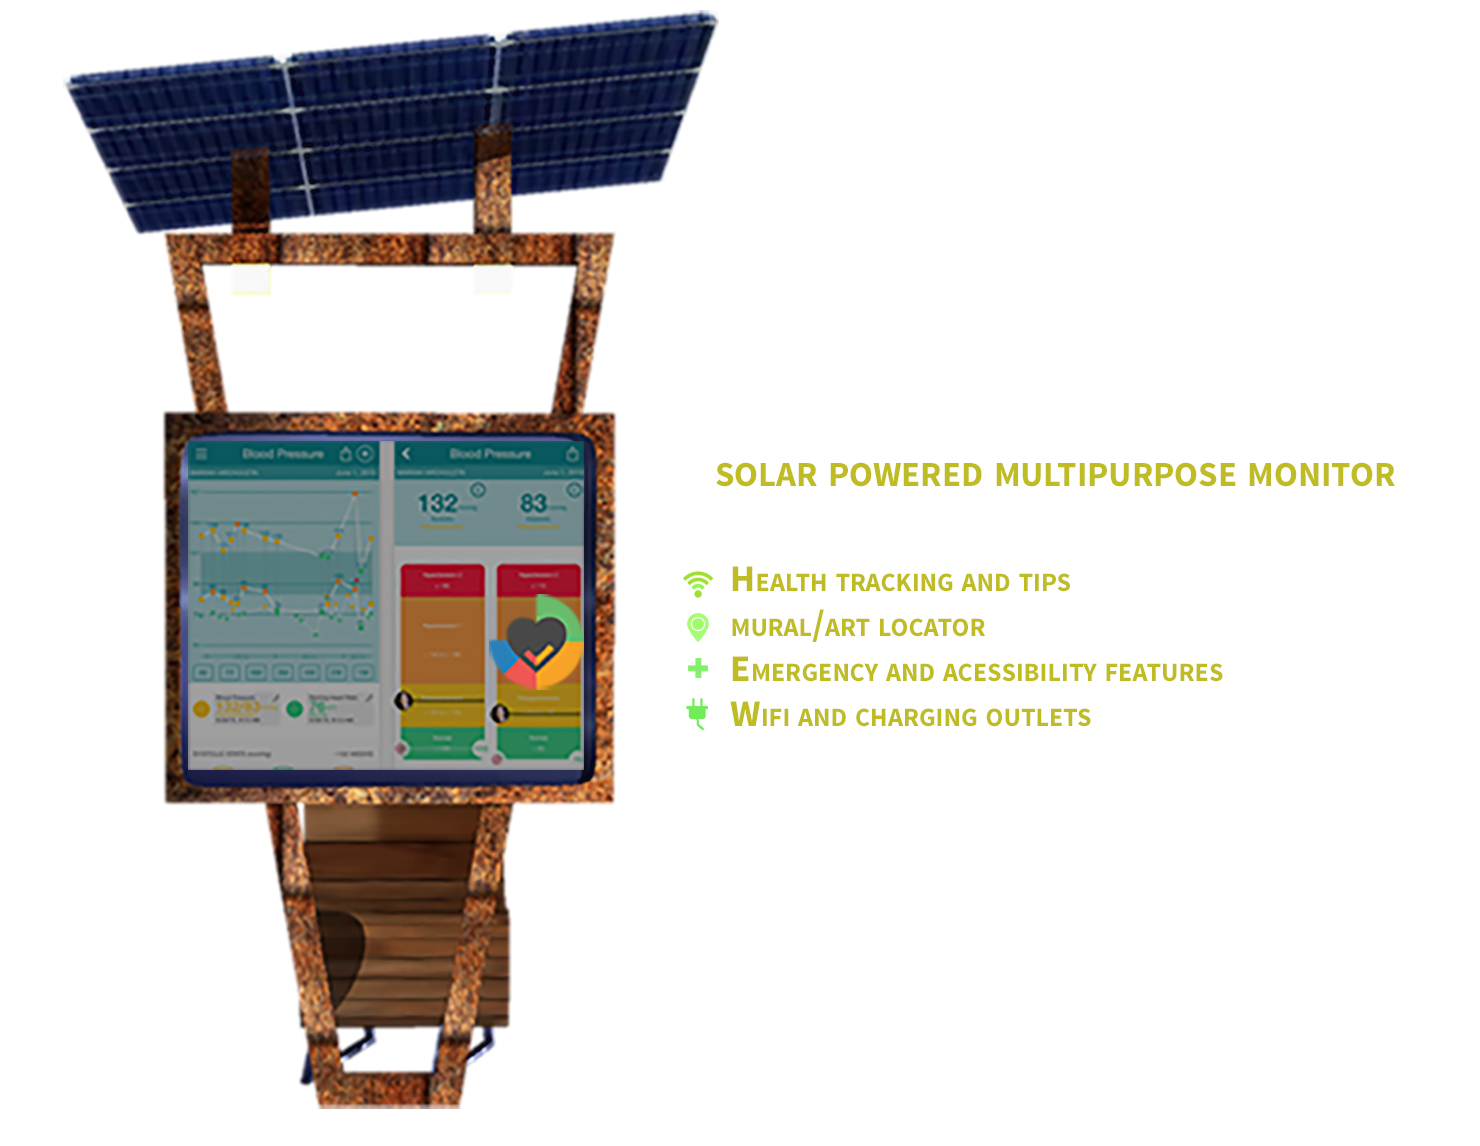 Copy of SOLAR POWERED MUTIPURPOSE MONITOR